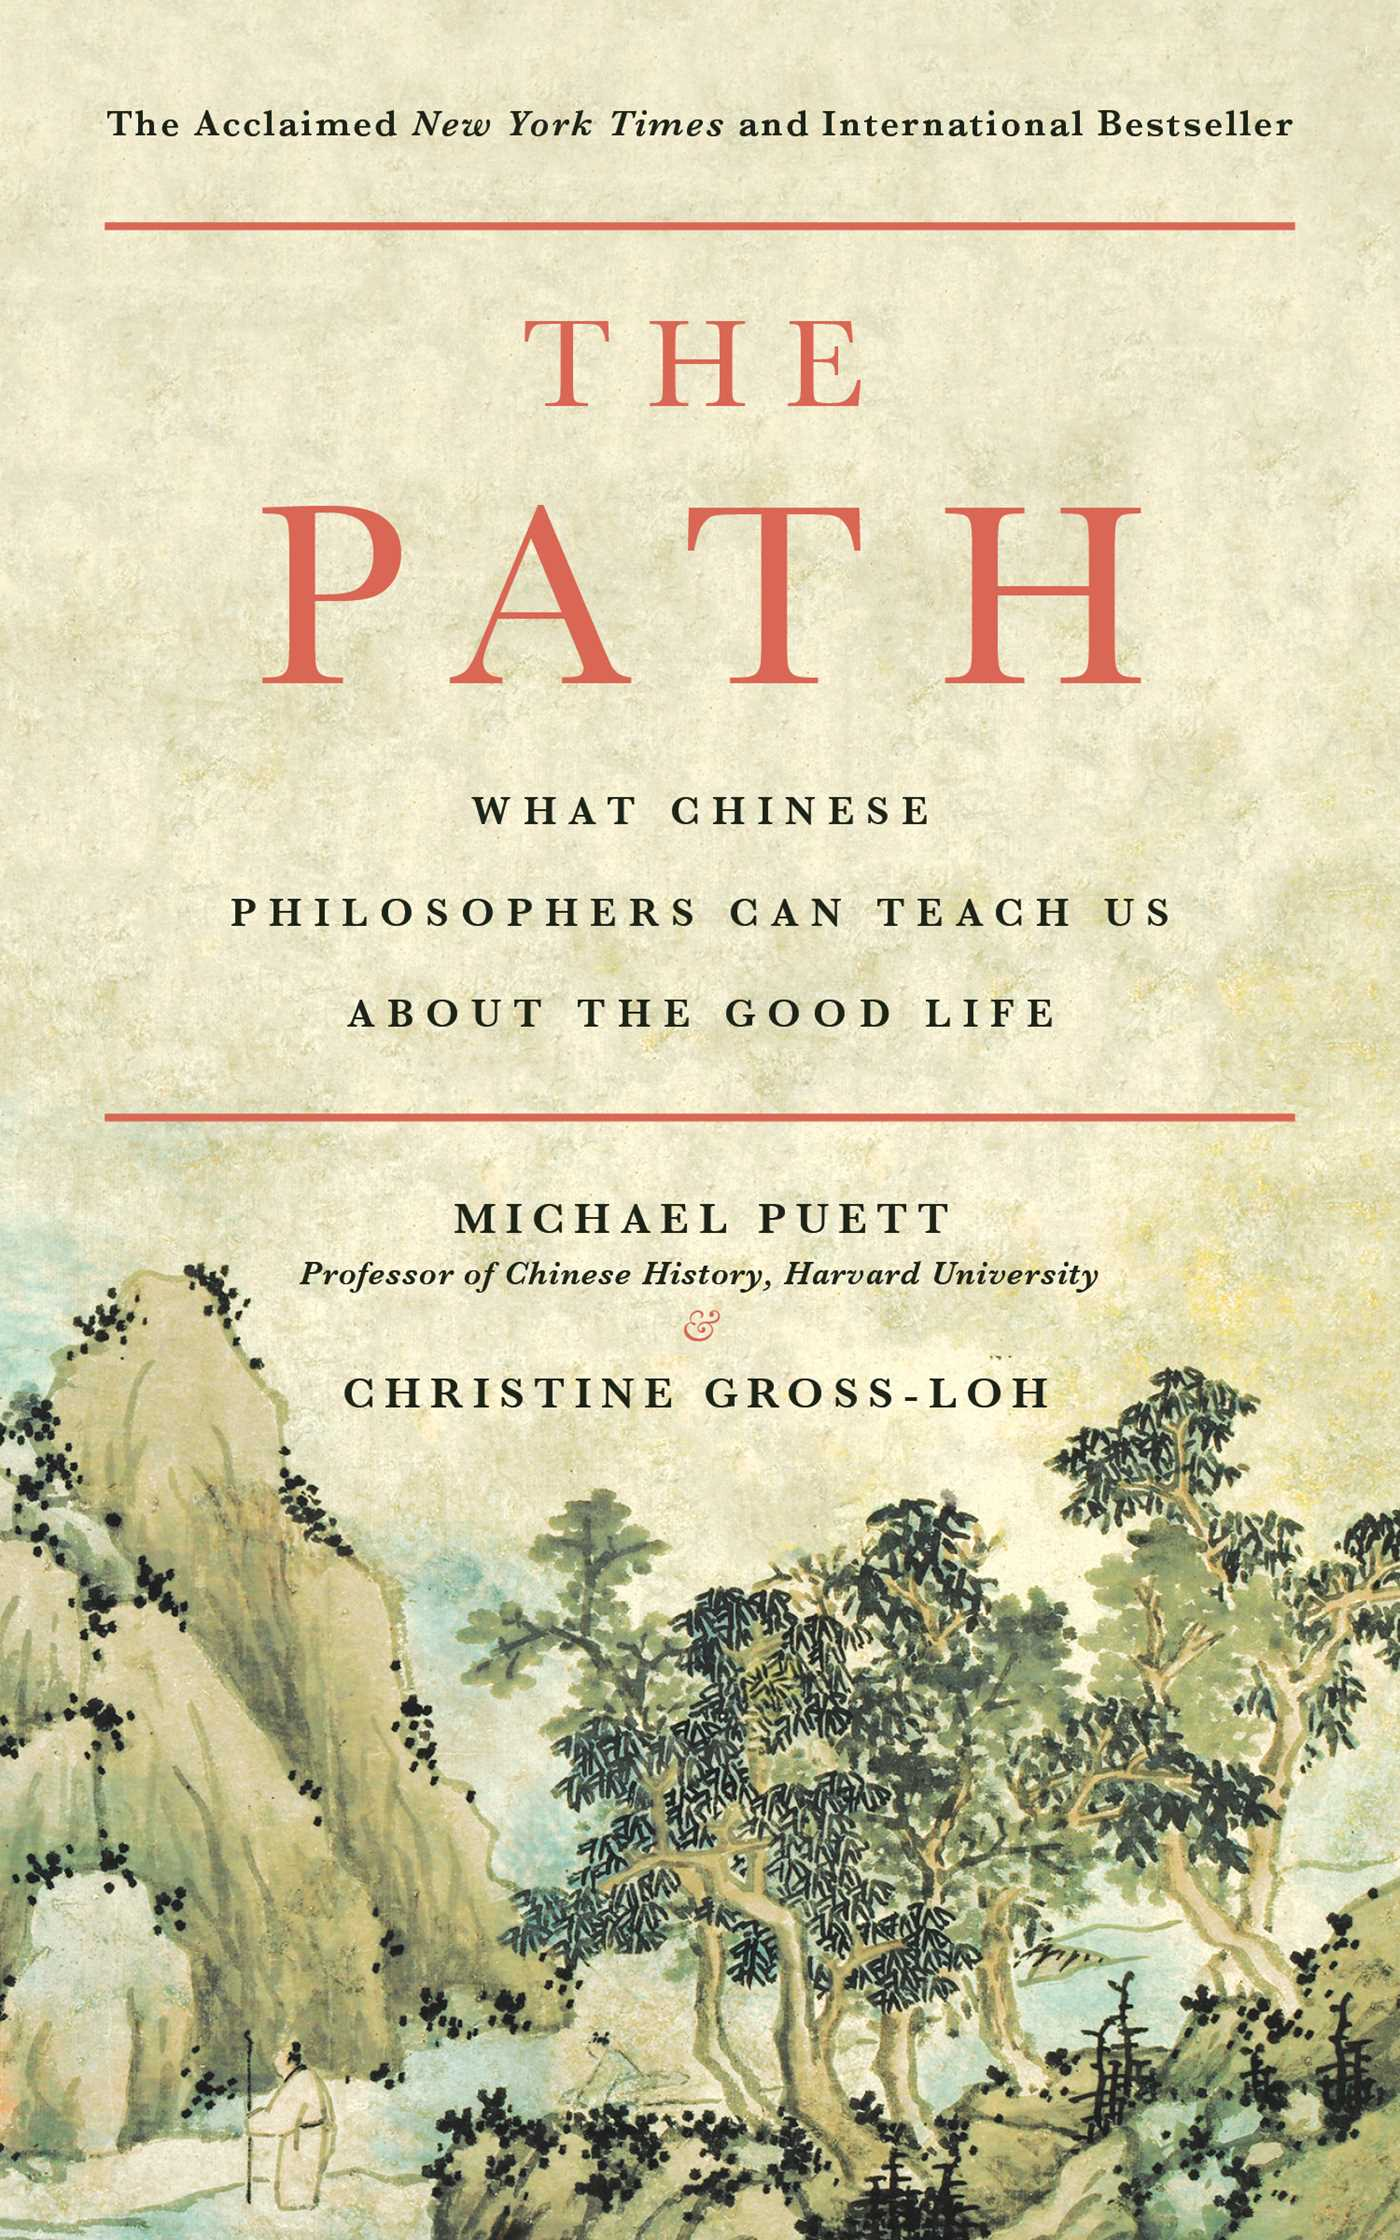 The path ebook by michael puett christine gross loh official what chinese philosophers can teach us about the good life fandeluxe Image collections